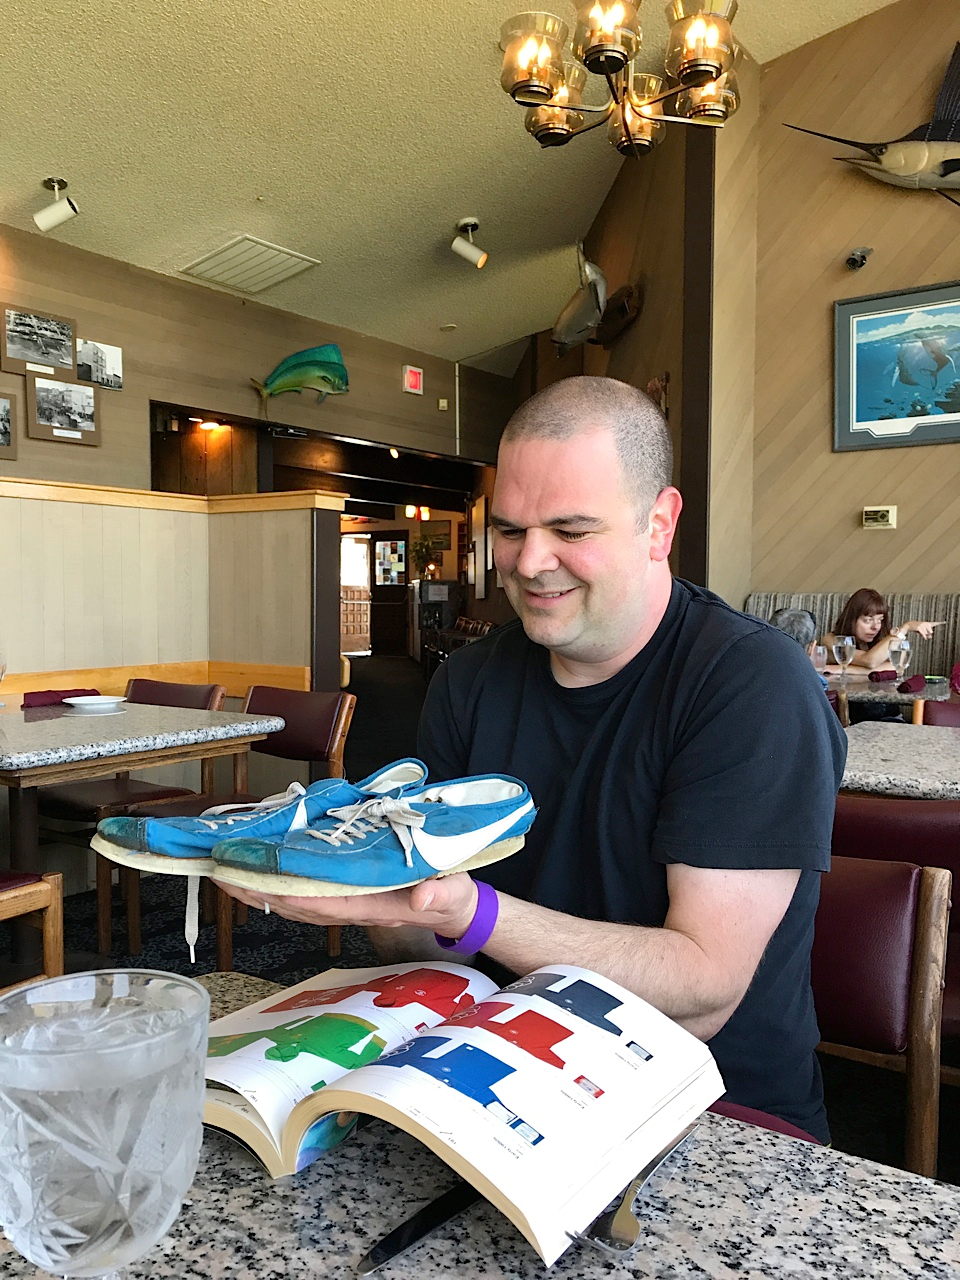 Jordan Geller with Steve Prefontaine's 1972 Nike Finland Blues